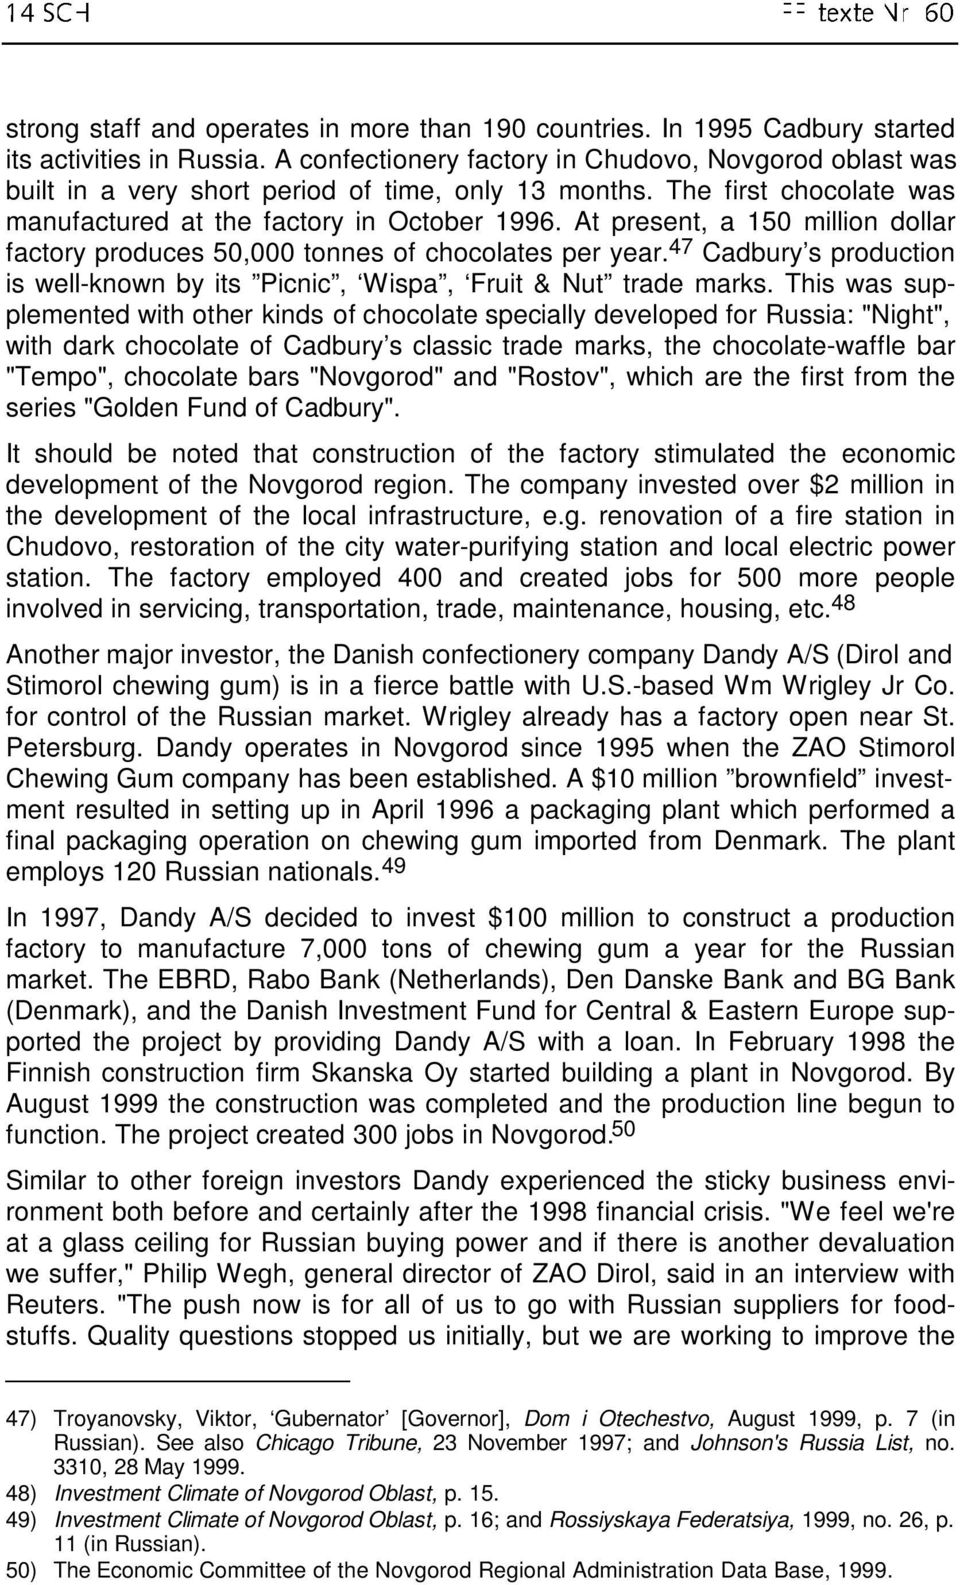 At present, a 150 million dollar factory produces 50,000 tonnes of chocolates per year. 47 Cadbury s production is well-known by its Picnic, Wispa, Fruit & Nut trade marks.